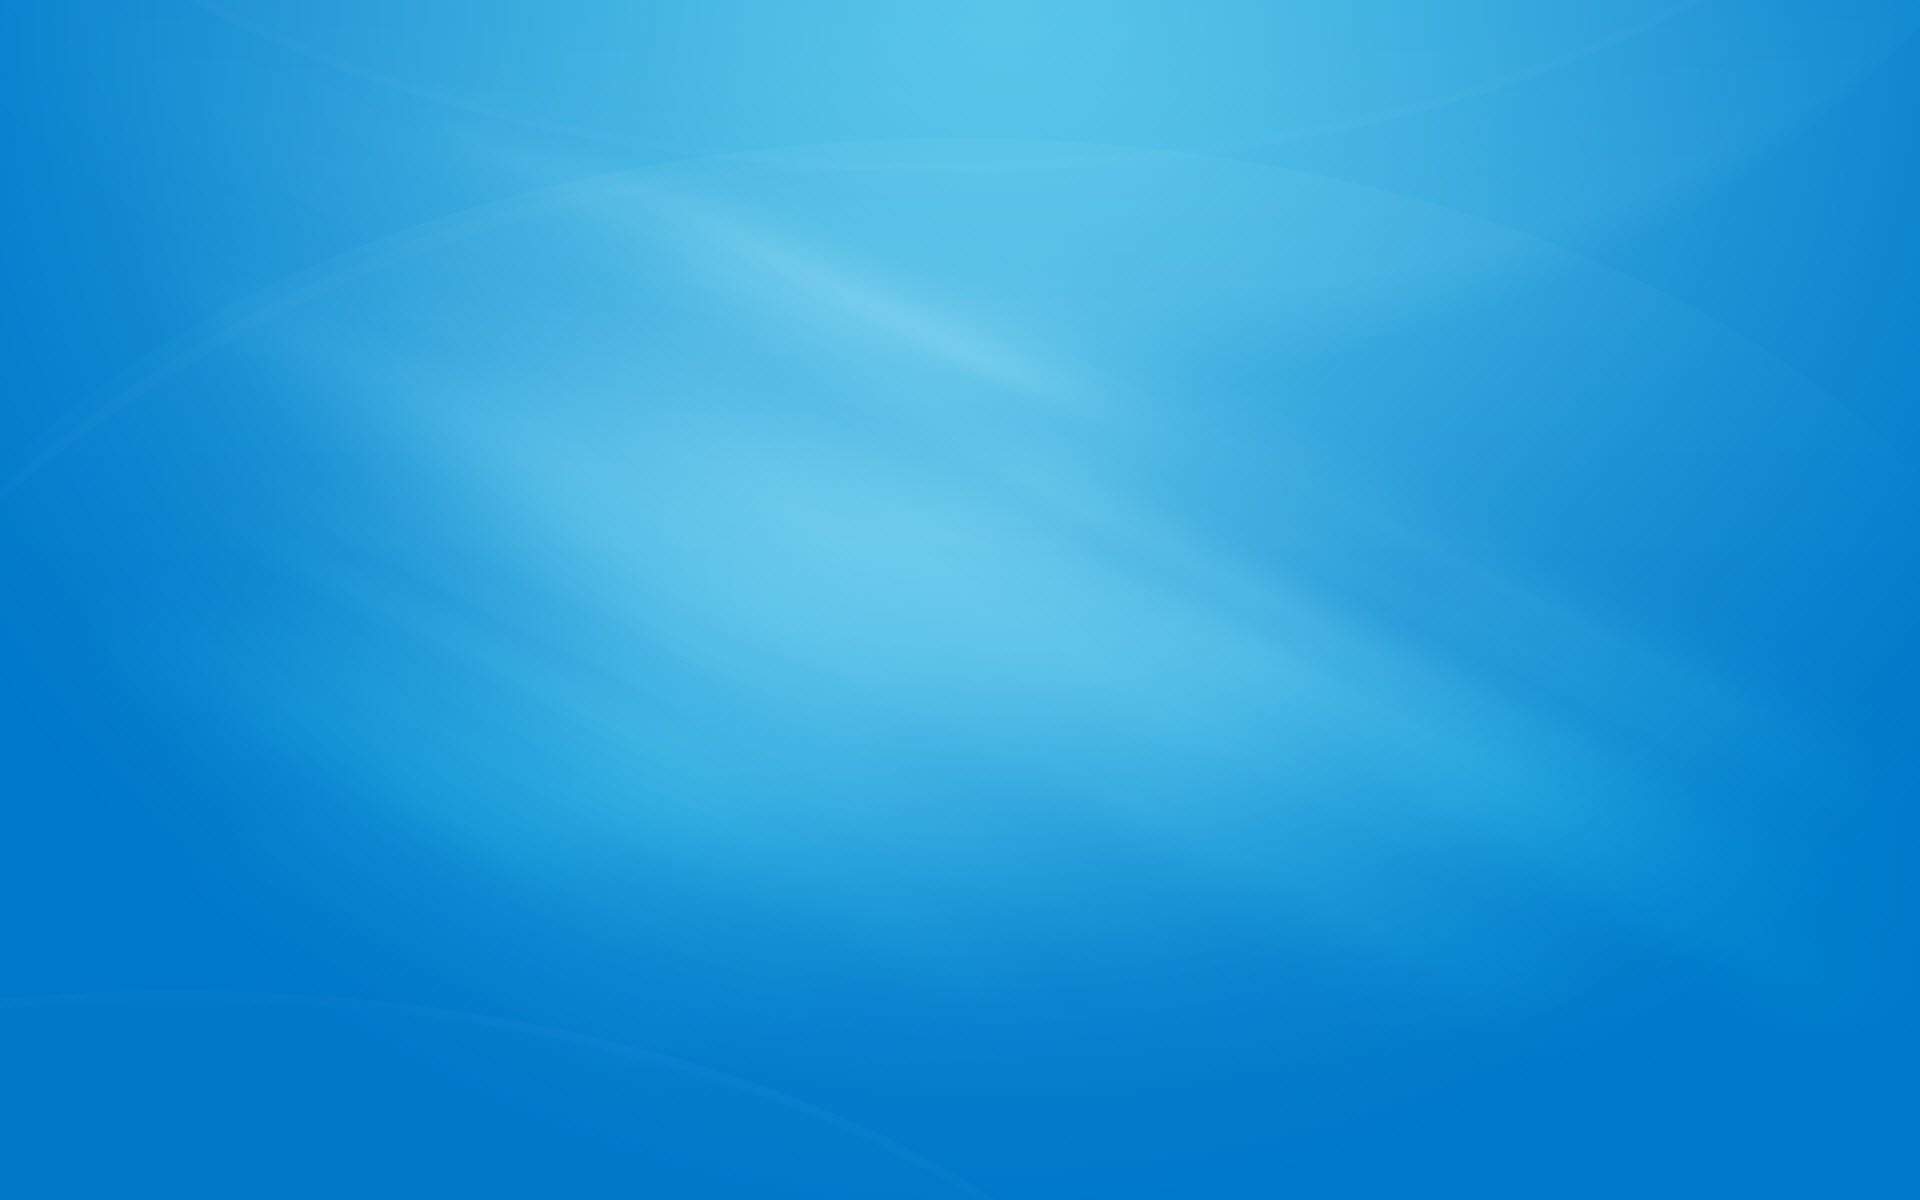 blue-wallpaper-7